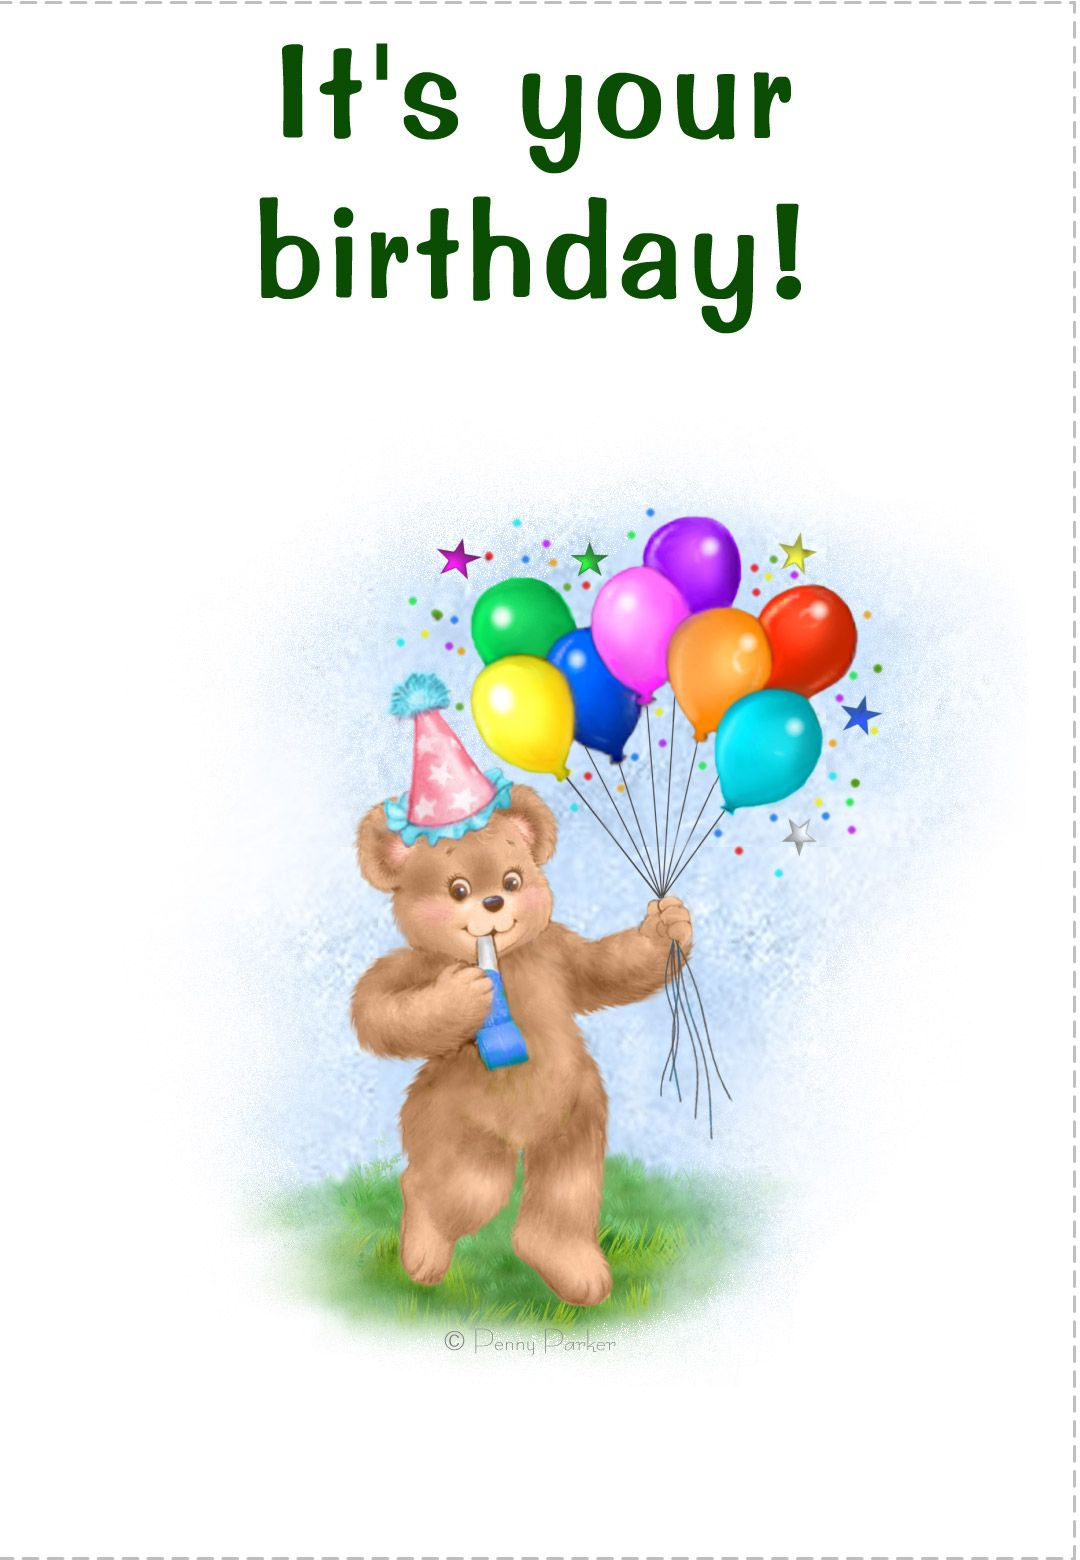 free printable its your birthday greeting card